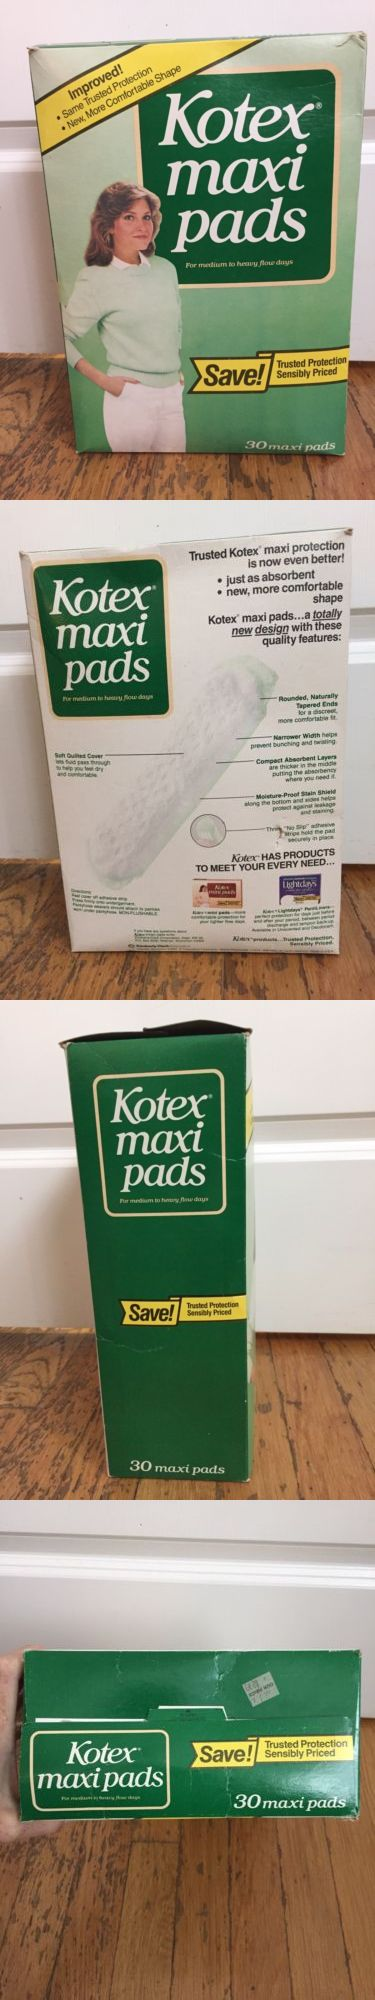 Sanitary Napkins: Box Of Vintage Kotex Maxi Pads 1984 28 30 Count Medium To Heavy Flow -> BUY IT NOW ONLY: $69.99 on eBay!